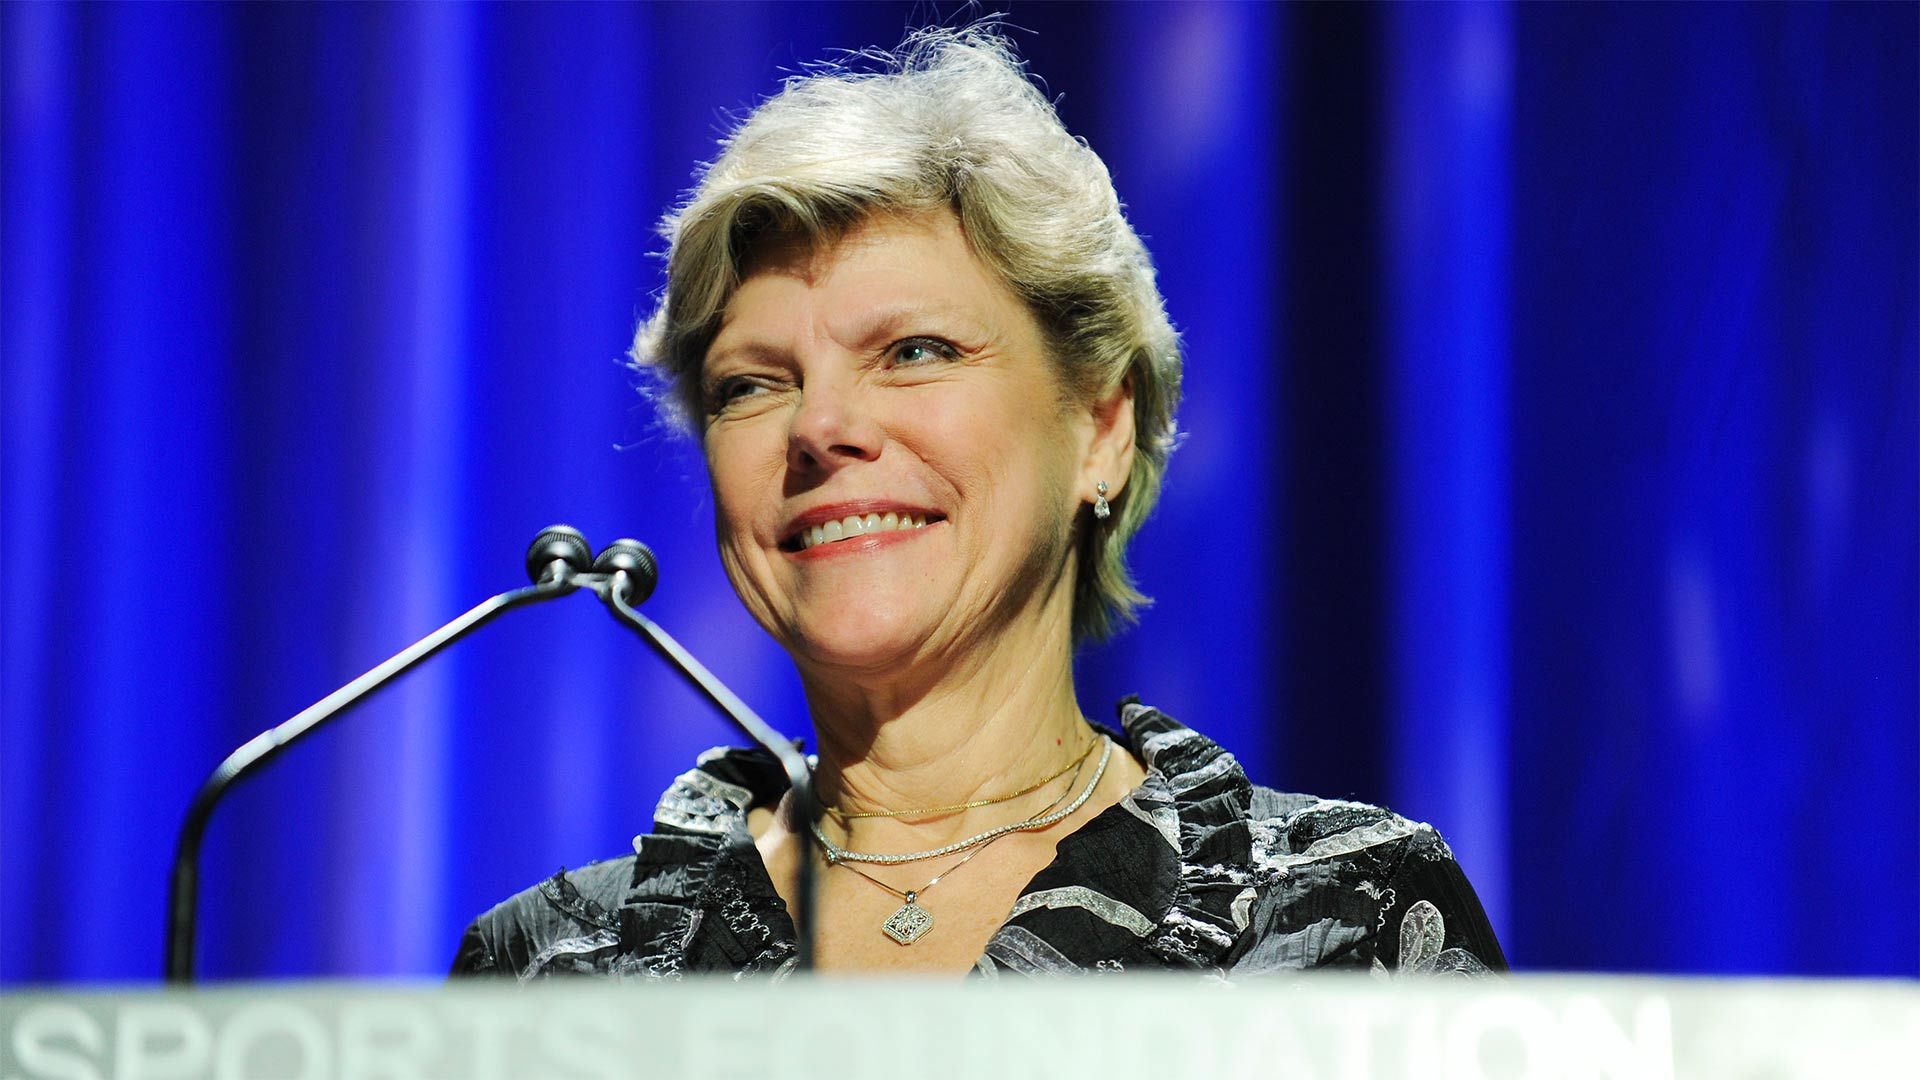 Remembering NPR's Cokie Roberts